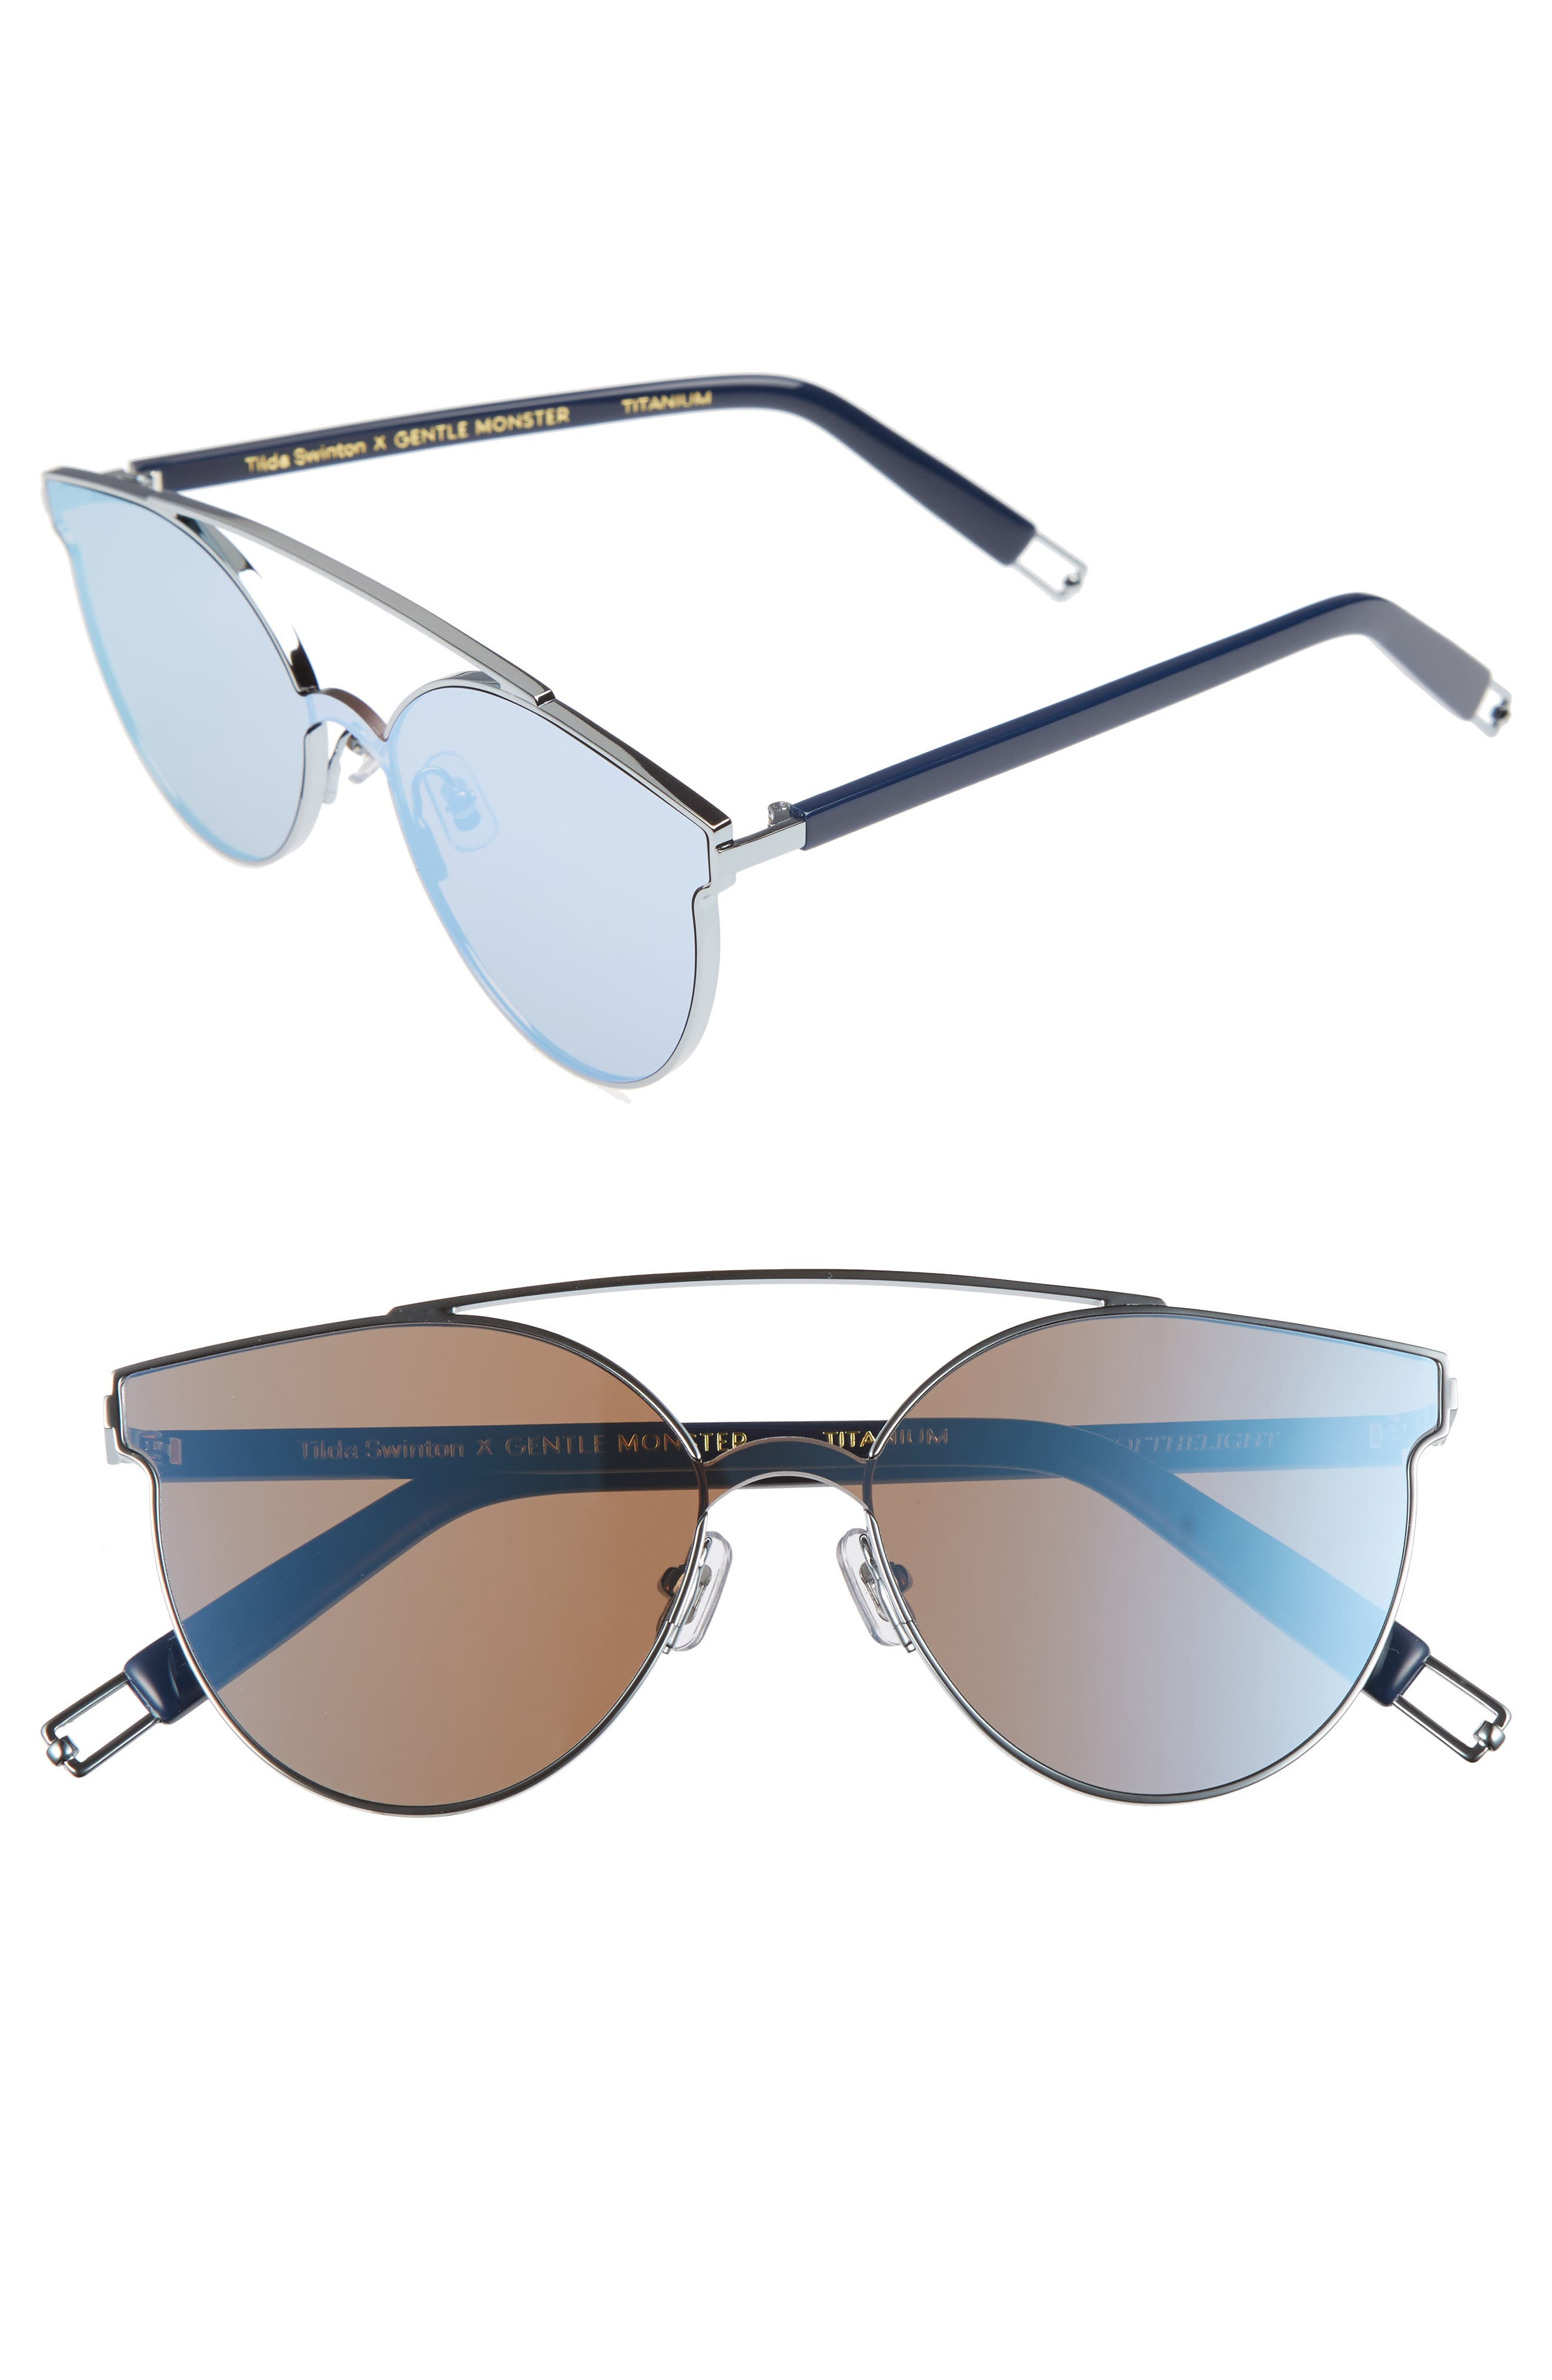 GENTLE MONSTER Tilda Swinton x Gentle Monster Trick of the Light 60mm Shield Sunglasses